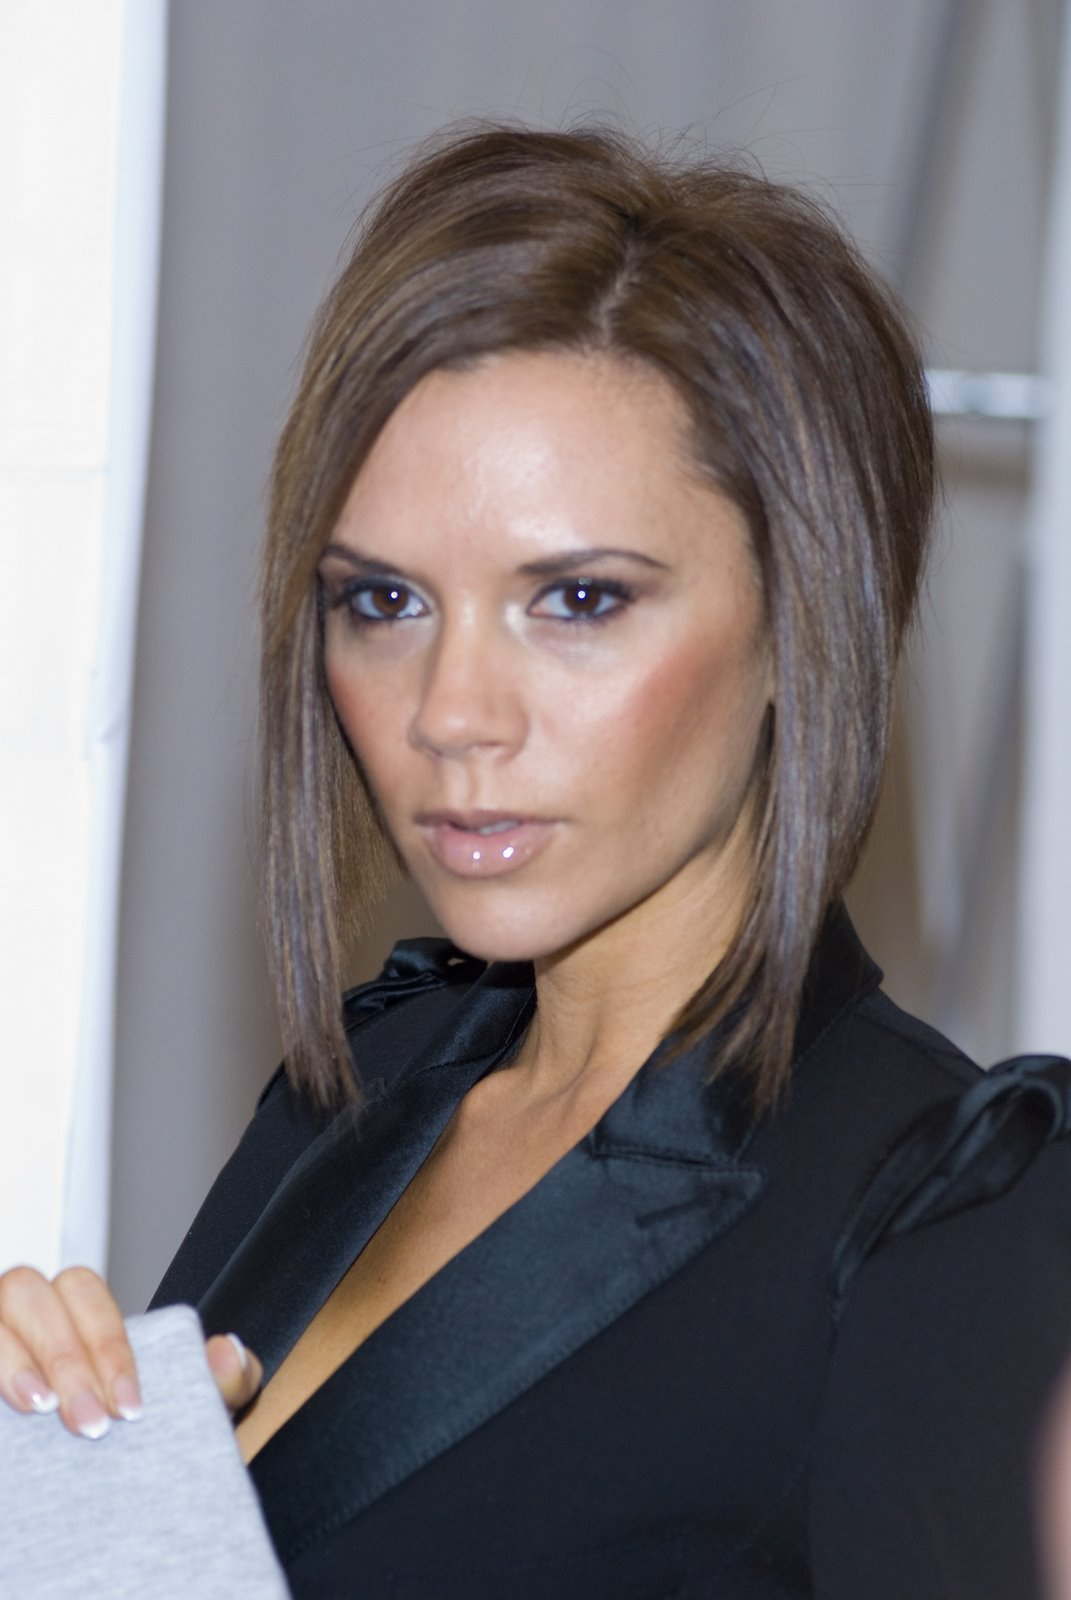 Celebrity Victoria Beckham Hairstyle Pictures Blondelacquer